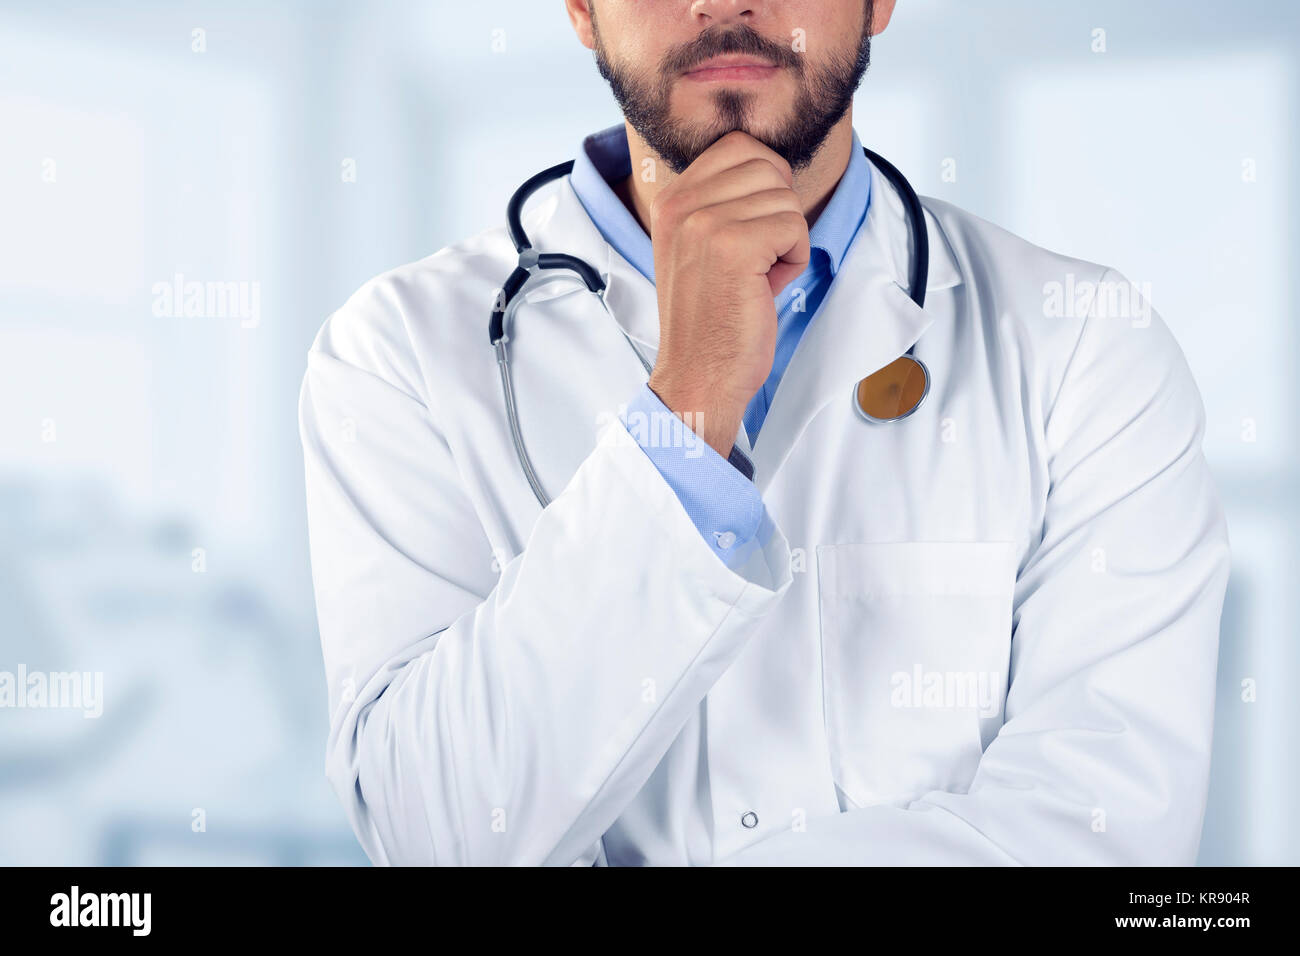 doctor standing with hand on chin - Stock Image